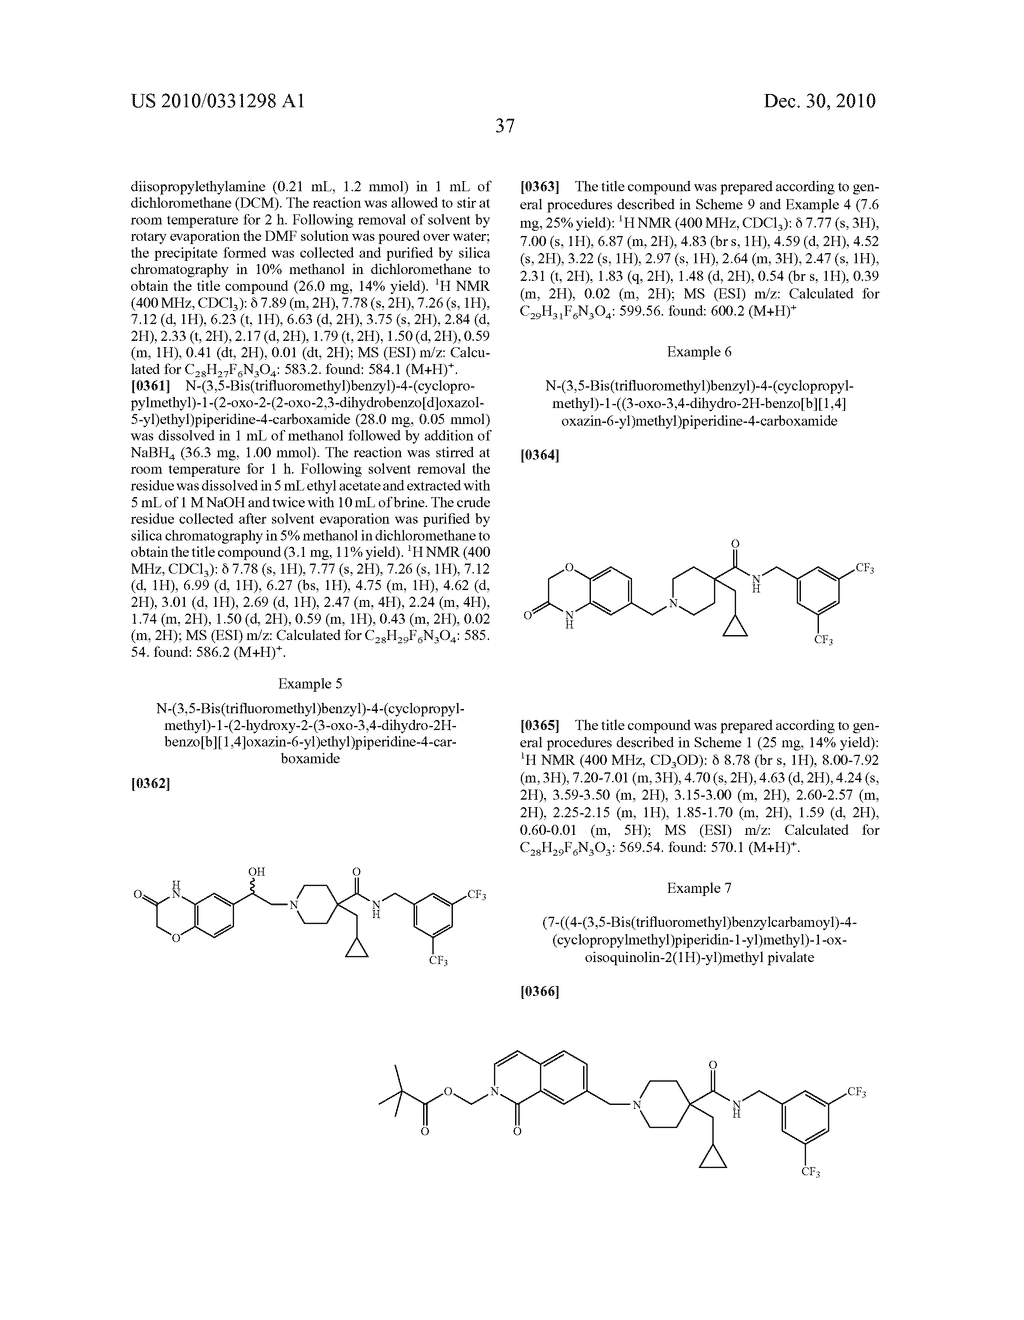 Carboxamide Compounds and Their Use - diagram, schematic, and image 38